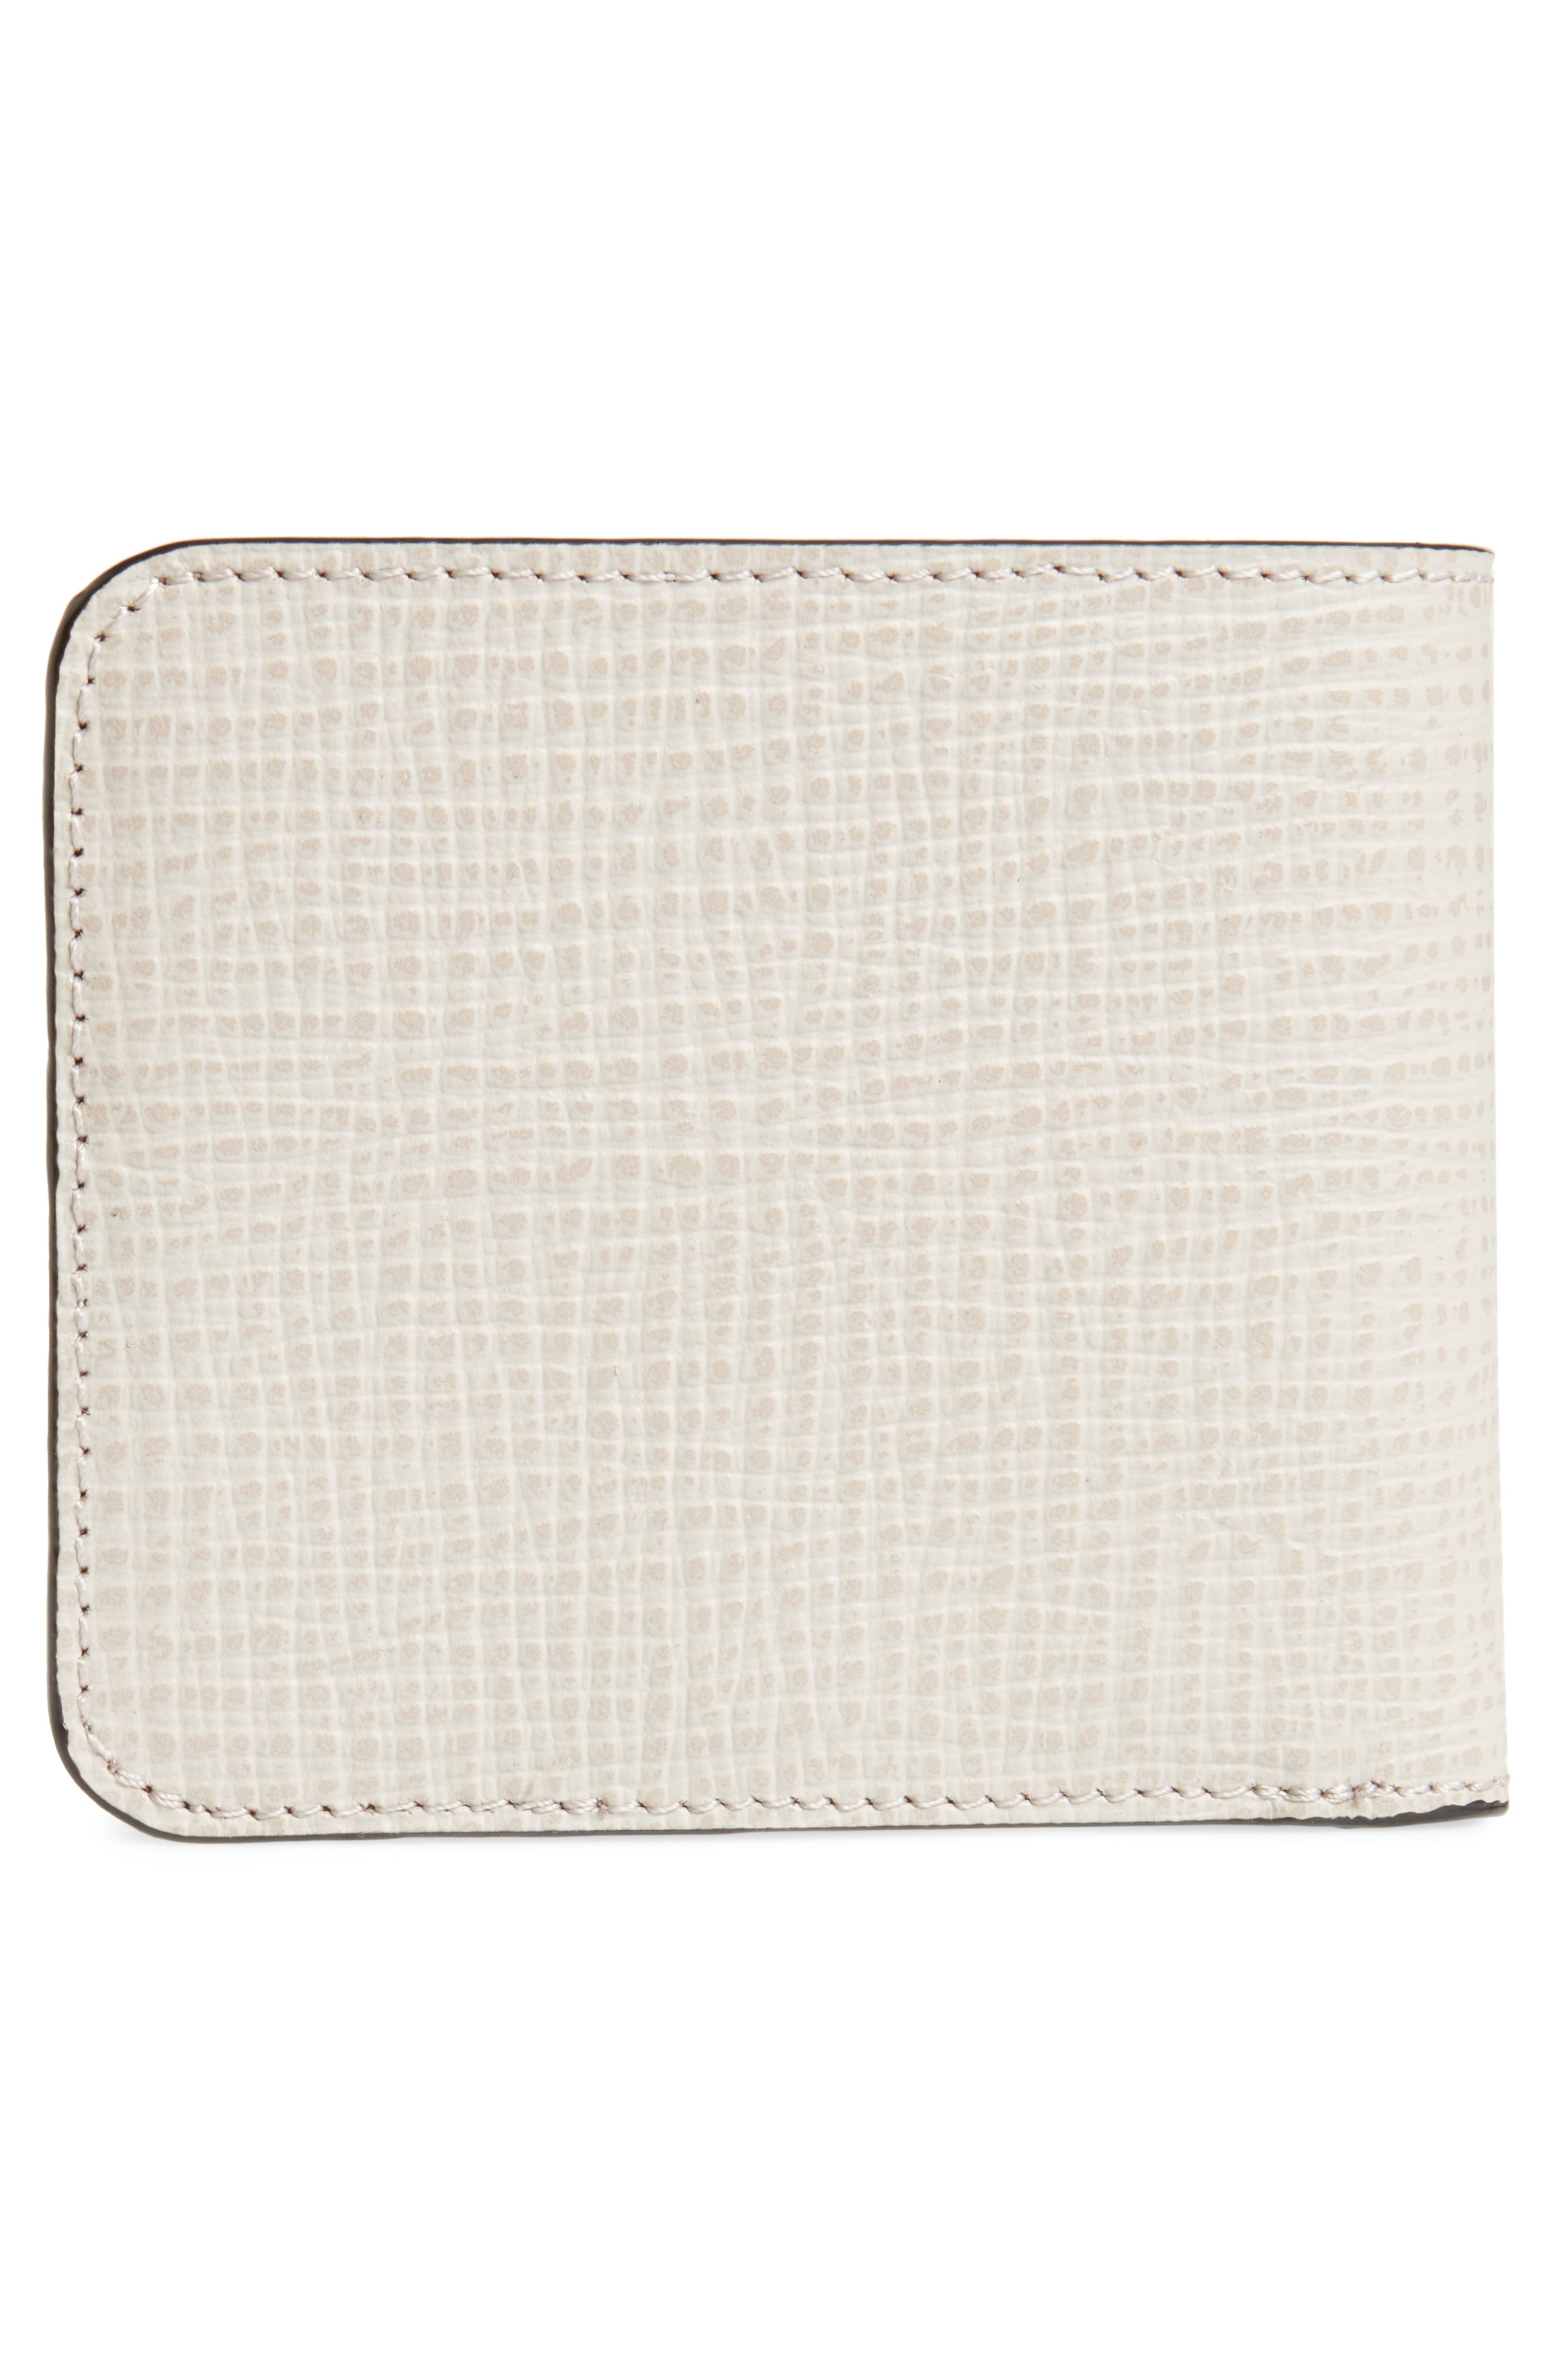 Astridd Palmelato Leather Wallet,                             Alternate thumbnail 3, color,                             Natural